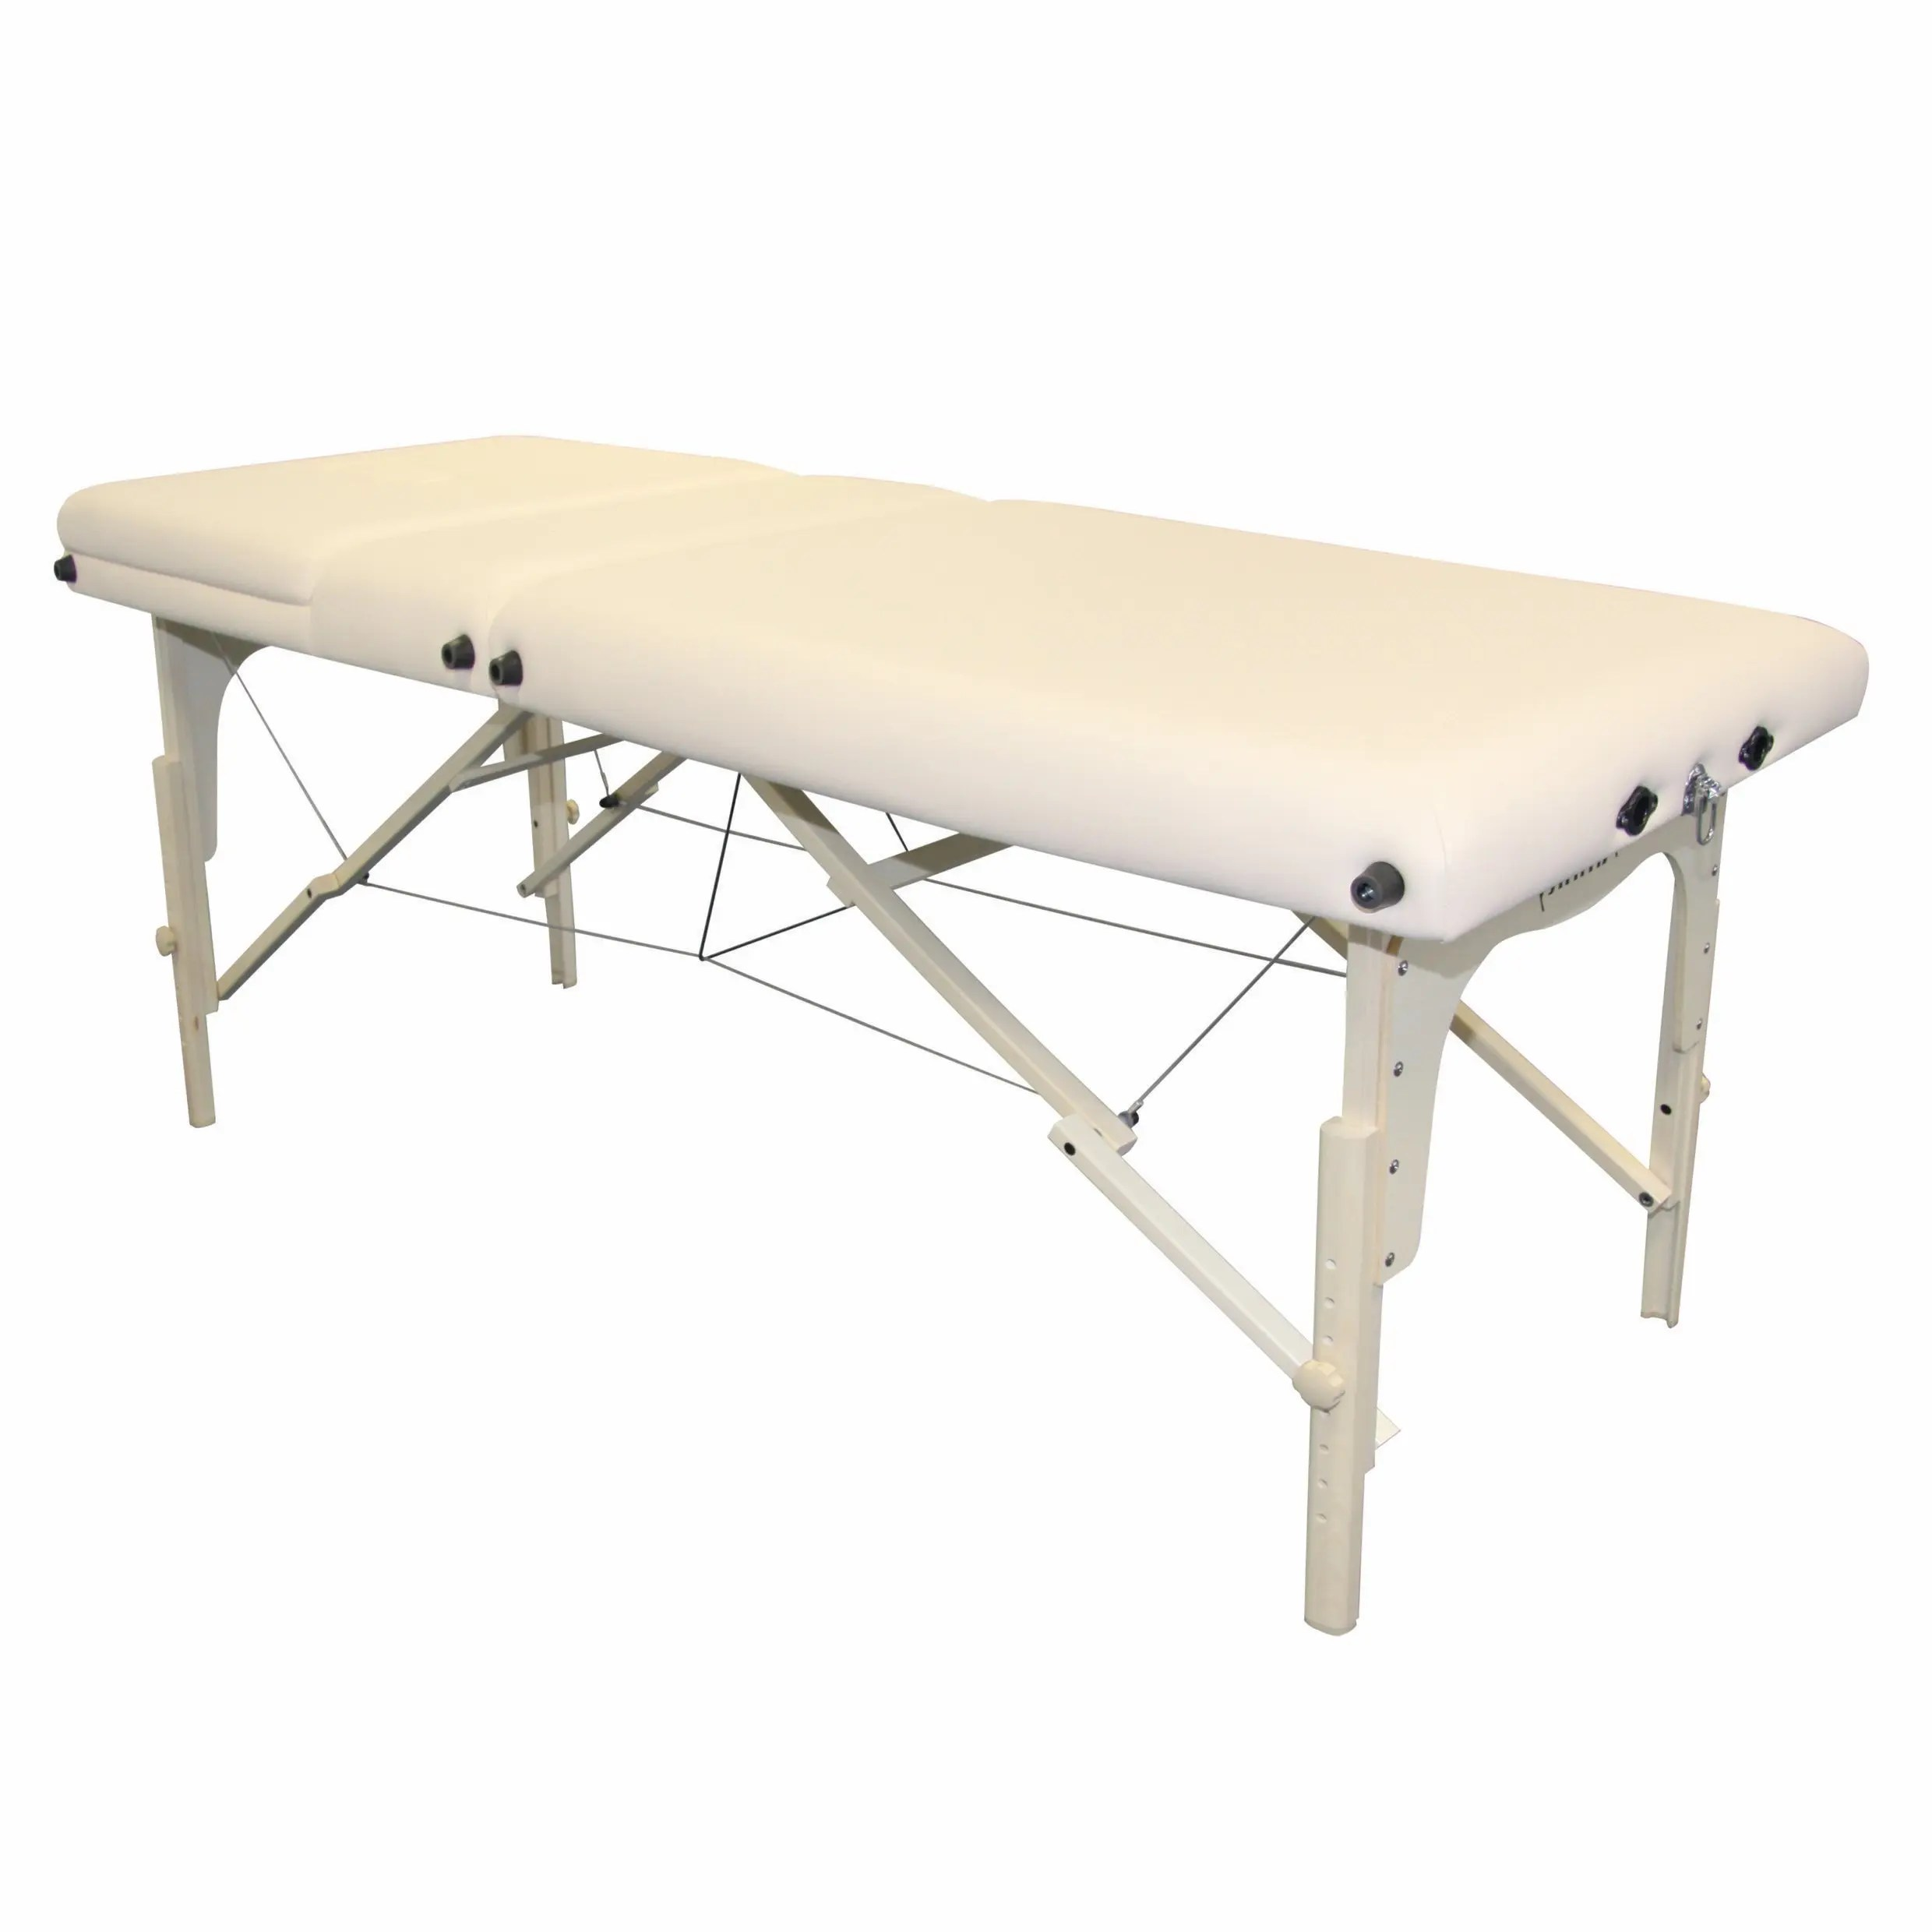 Offer: Affinity Portable Flexible Massage Table